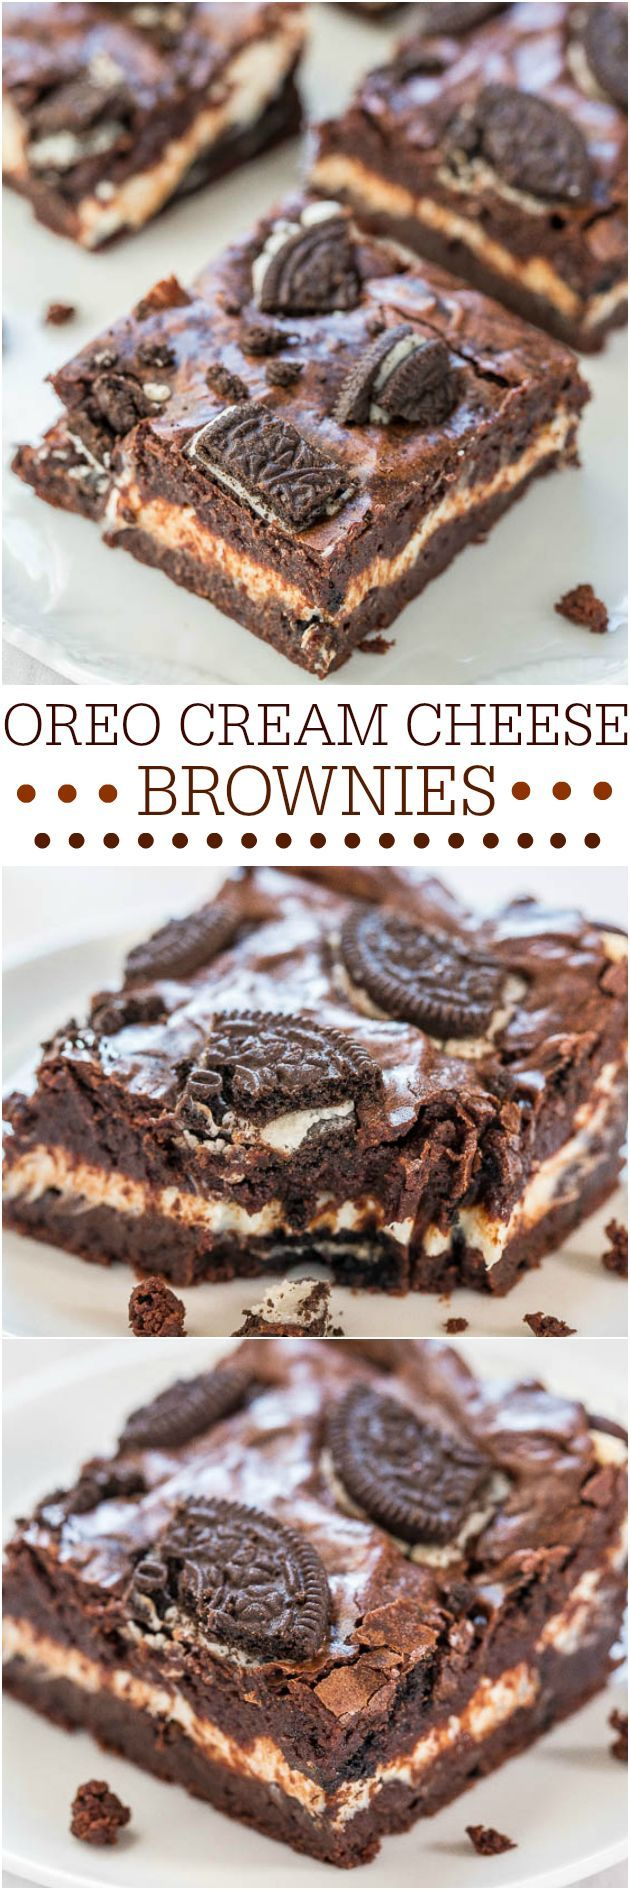 Oreo Cream Cheese Brownies - Fudgy brownies with a layer of cream cheese and tons of Oreos! They'll be your new favorites! Totally amazing!!